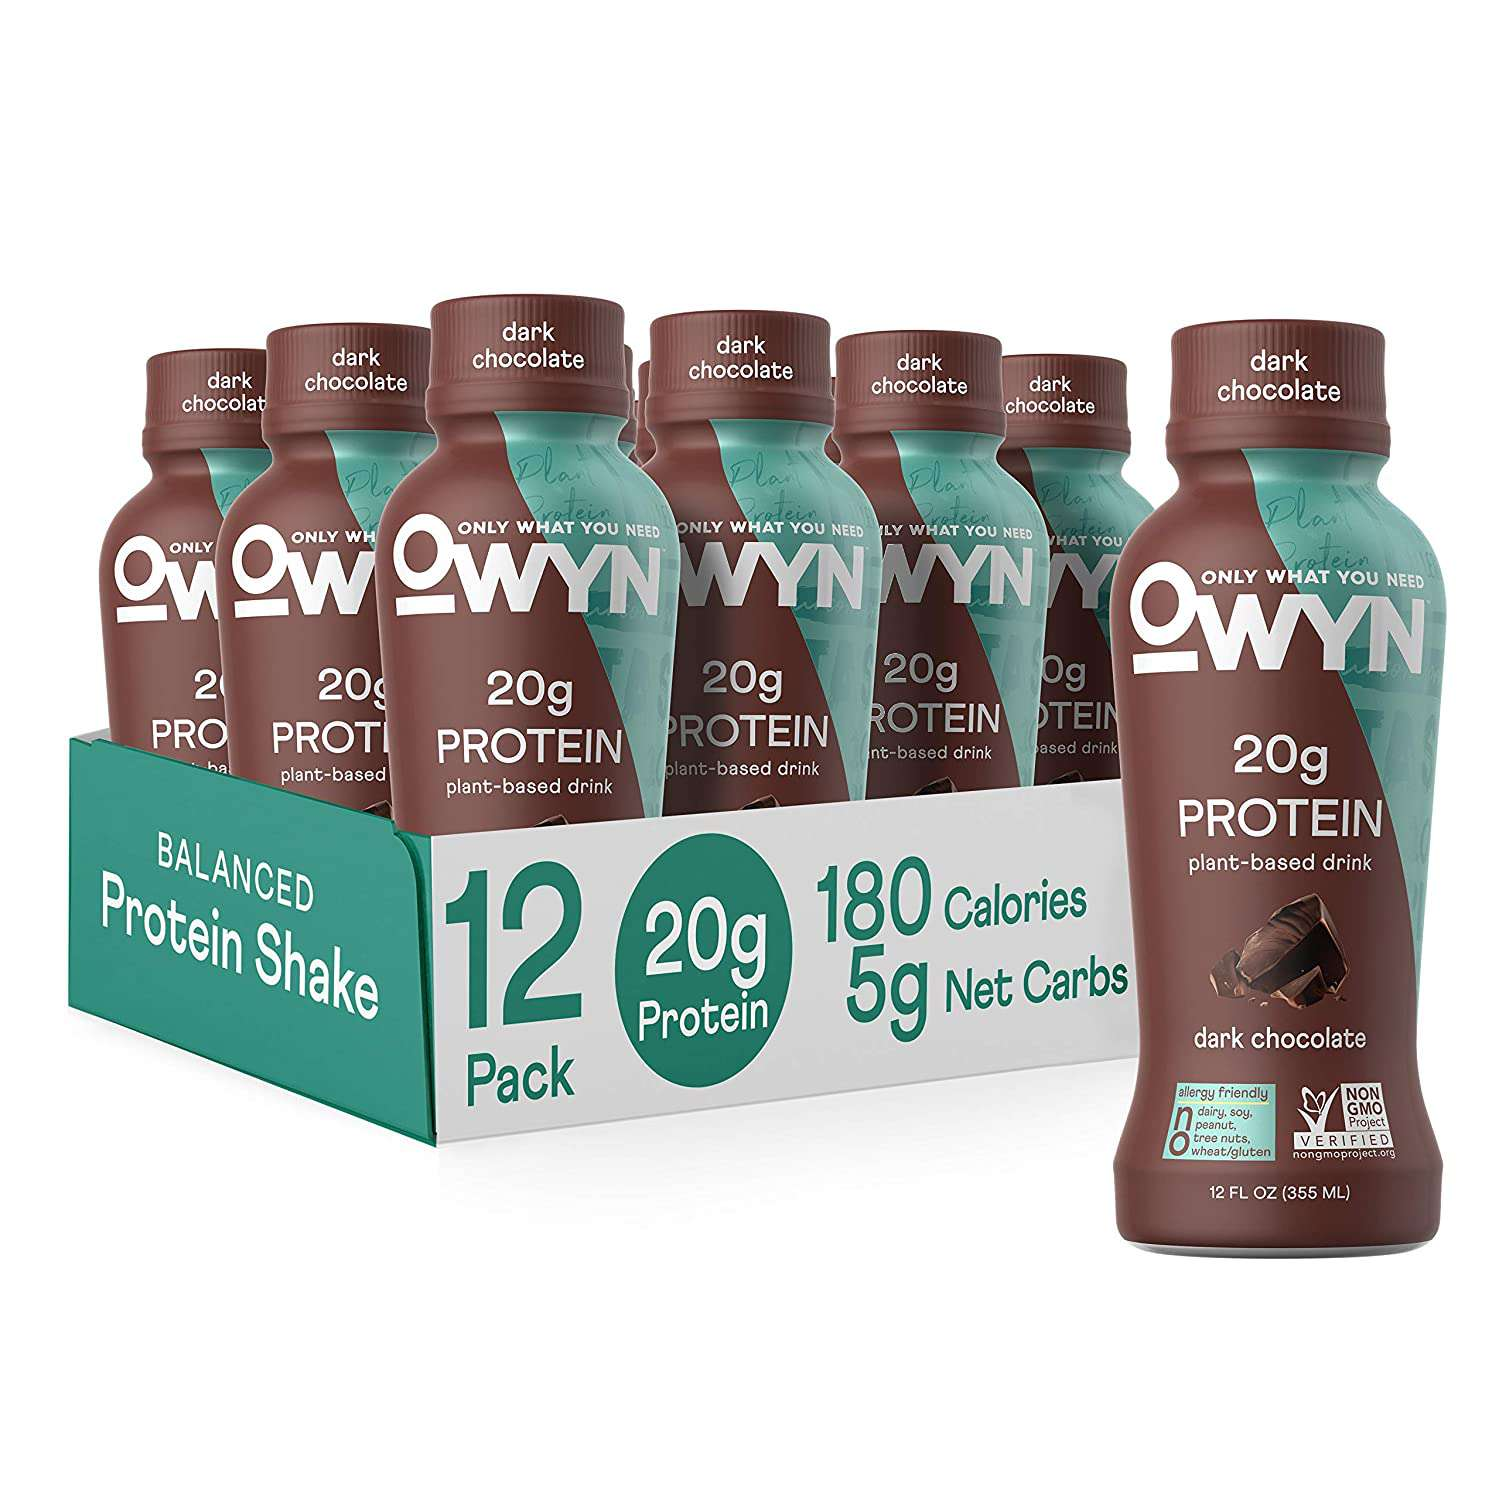 OWYN Only What You Need 100% Vegan Plant-Based Protein Shakes Dark Chocolate